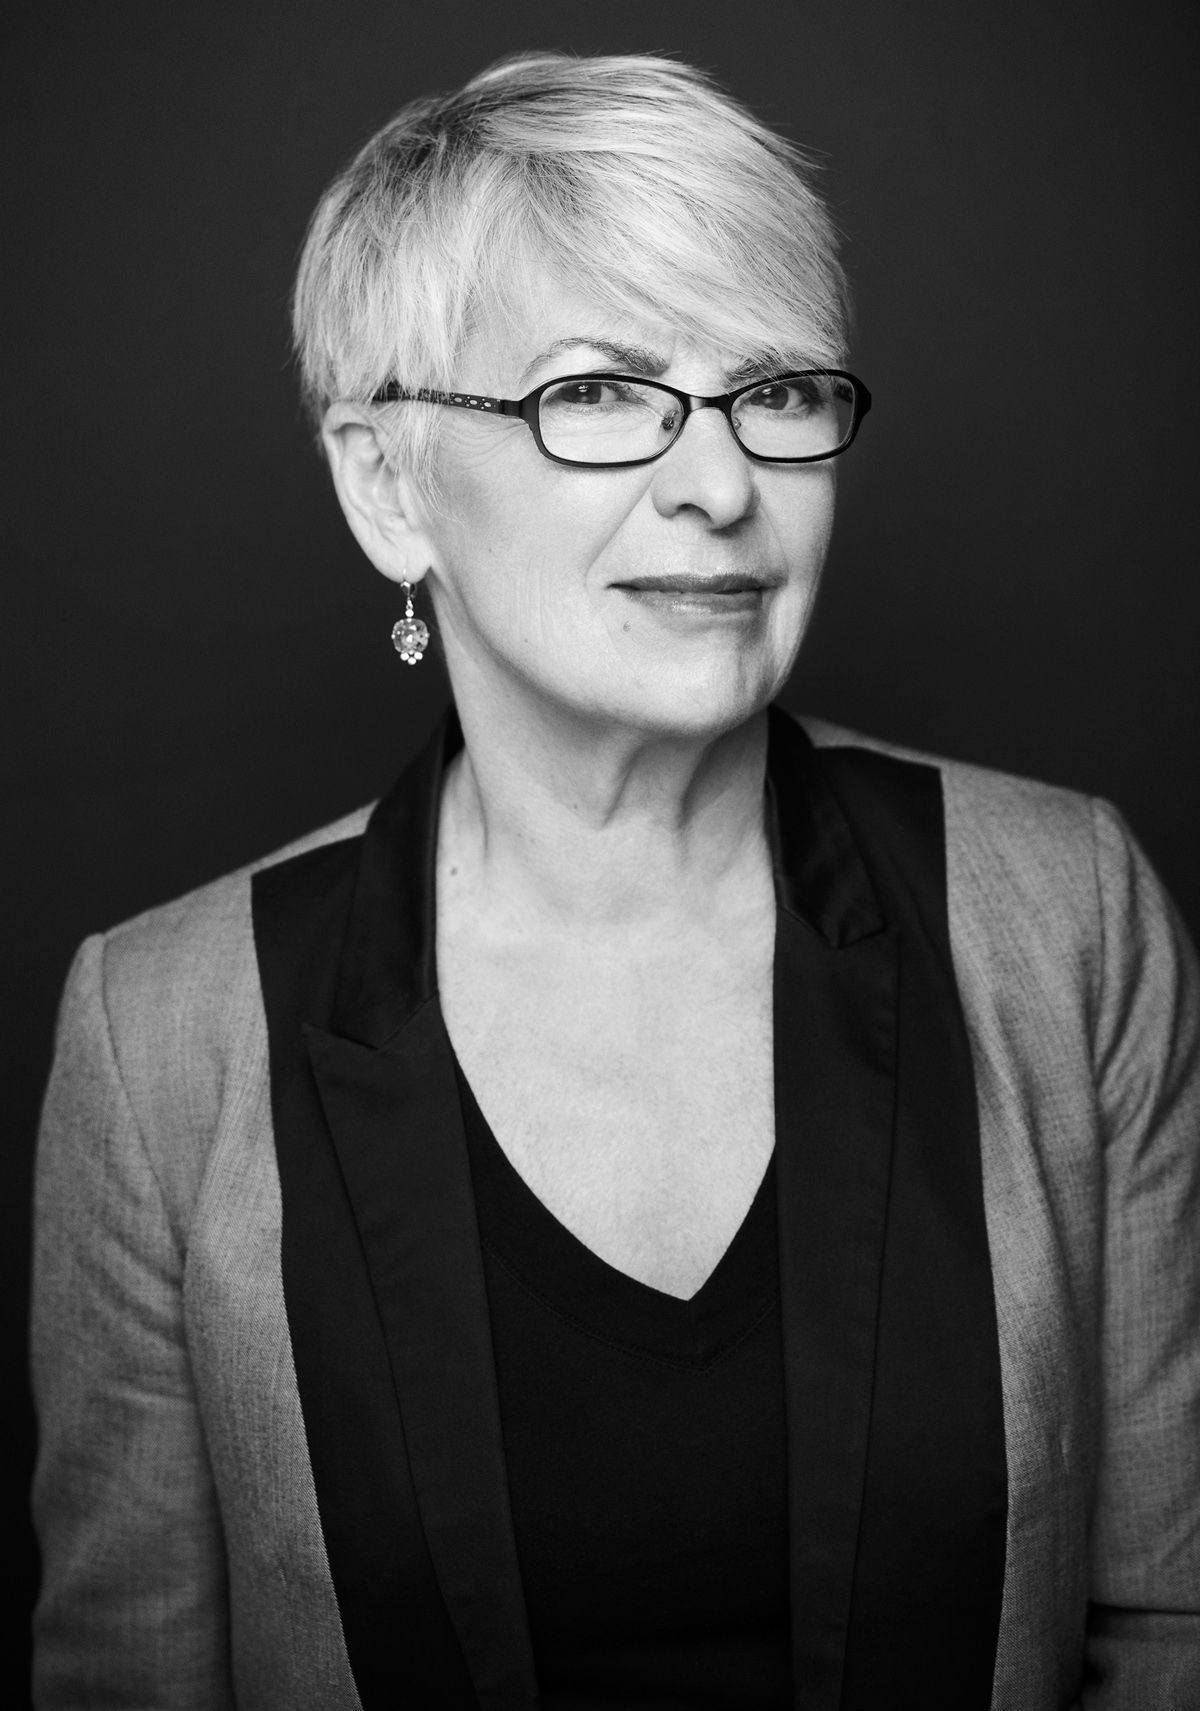 Black and white studio photograph of an older woman. She has very short gray hair, and she wears earrings, glasses, a black blouse, and a gray and black jacket. She smiles discreetly at the camera.